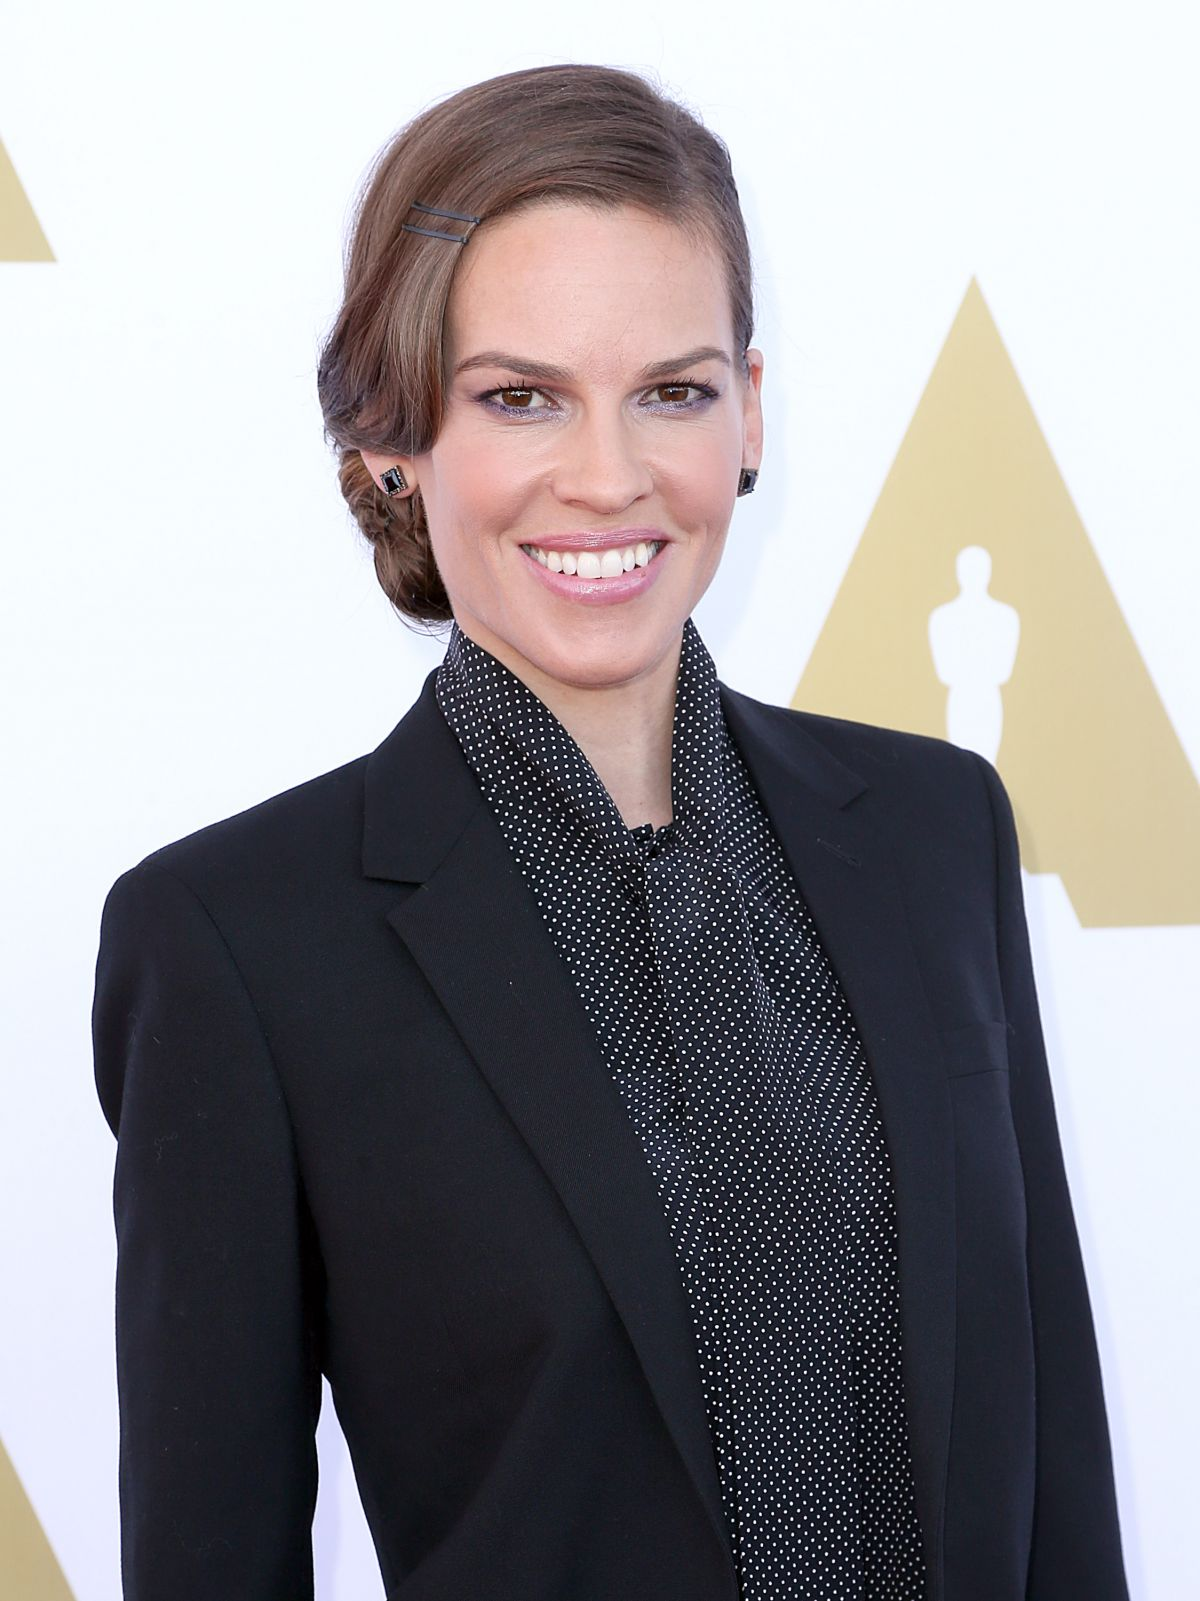 HILARY SWANK at Ampas Hollywood Costume Luncheon